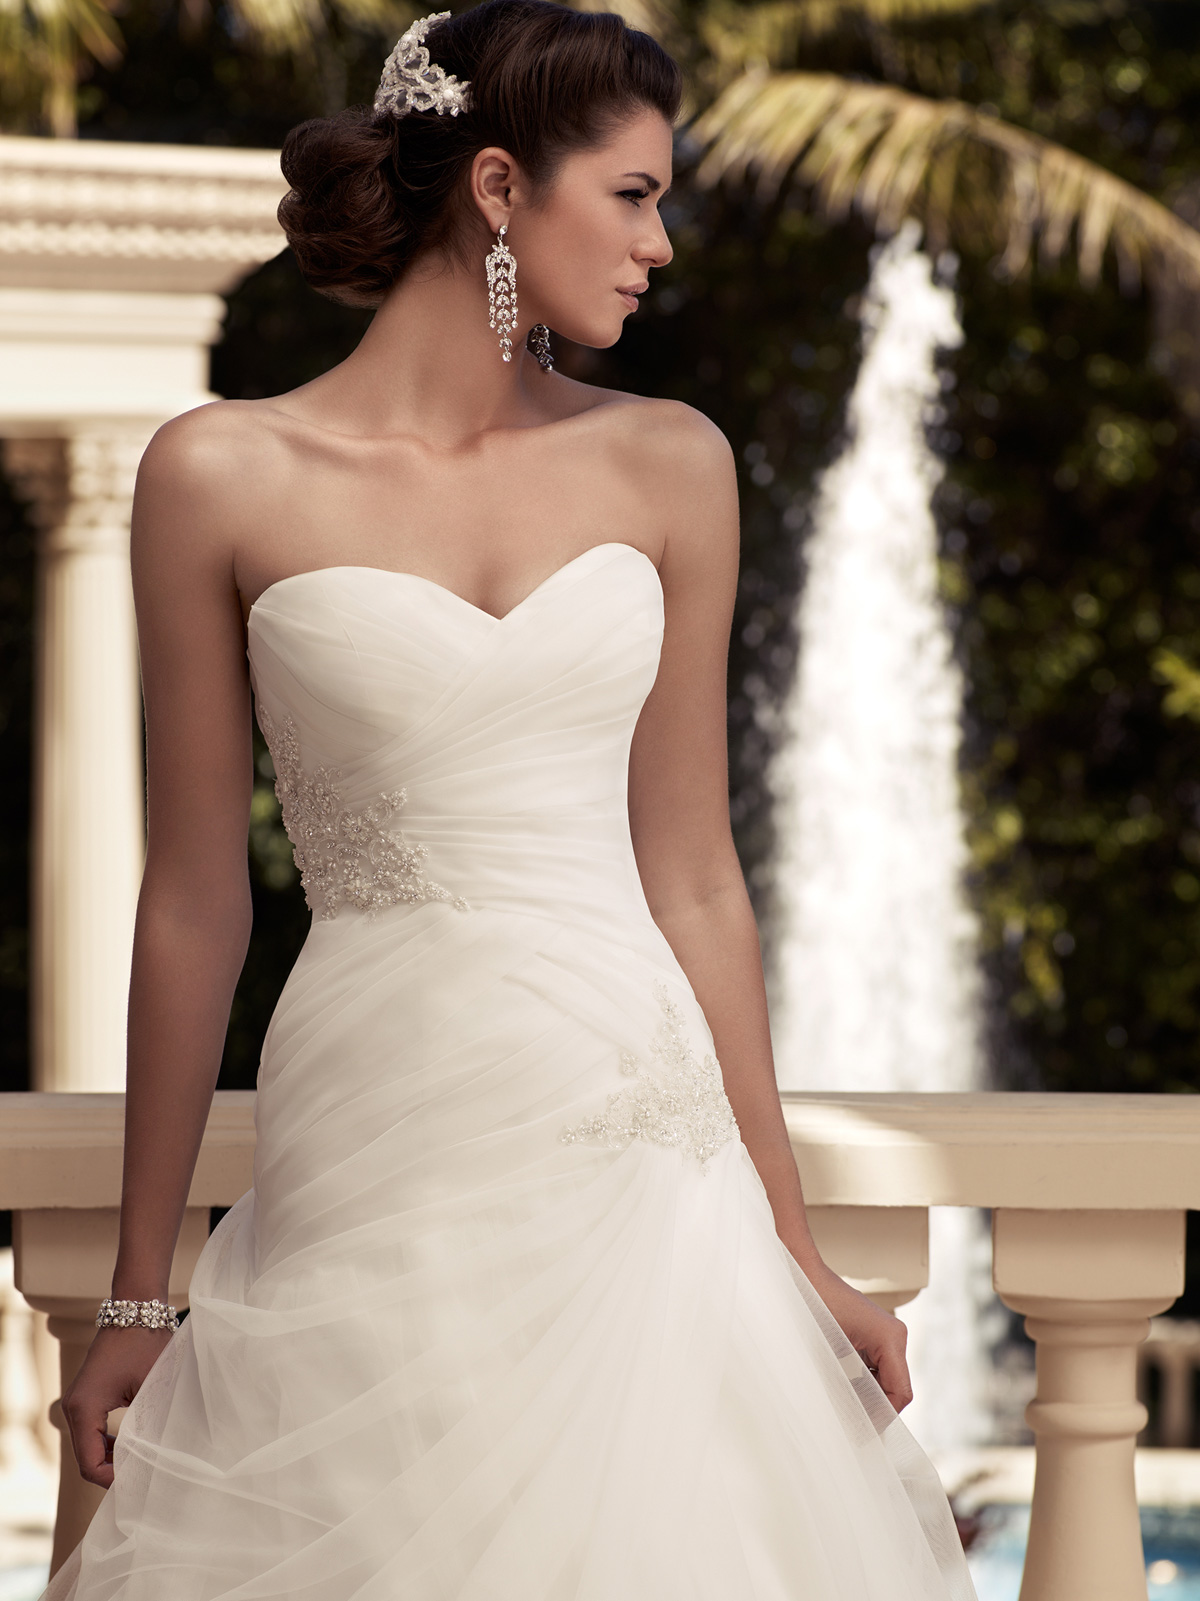 Sweetheart Fit And Flare Casablanca Bridal Gown 2109|DimitraDesigns.com